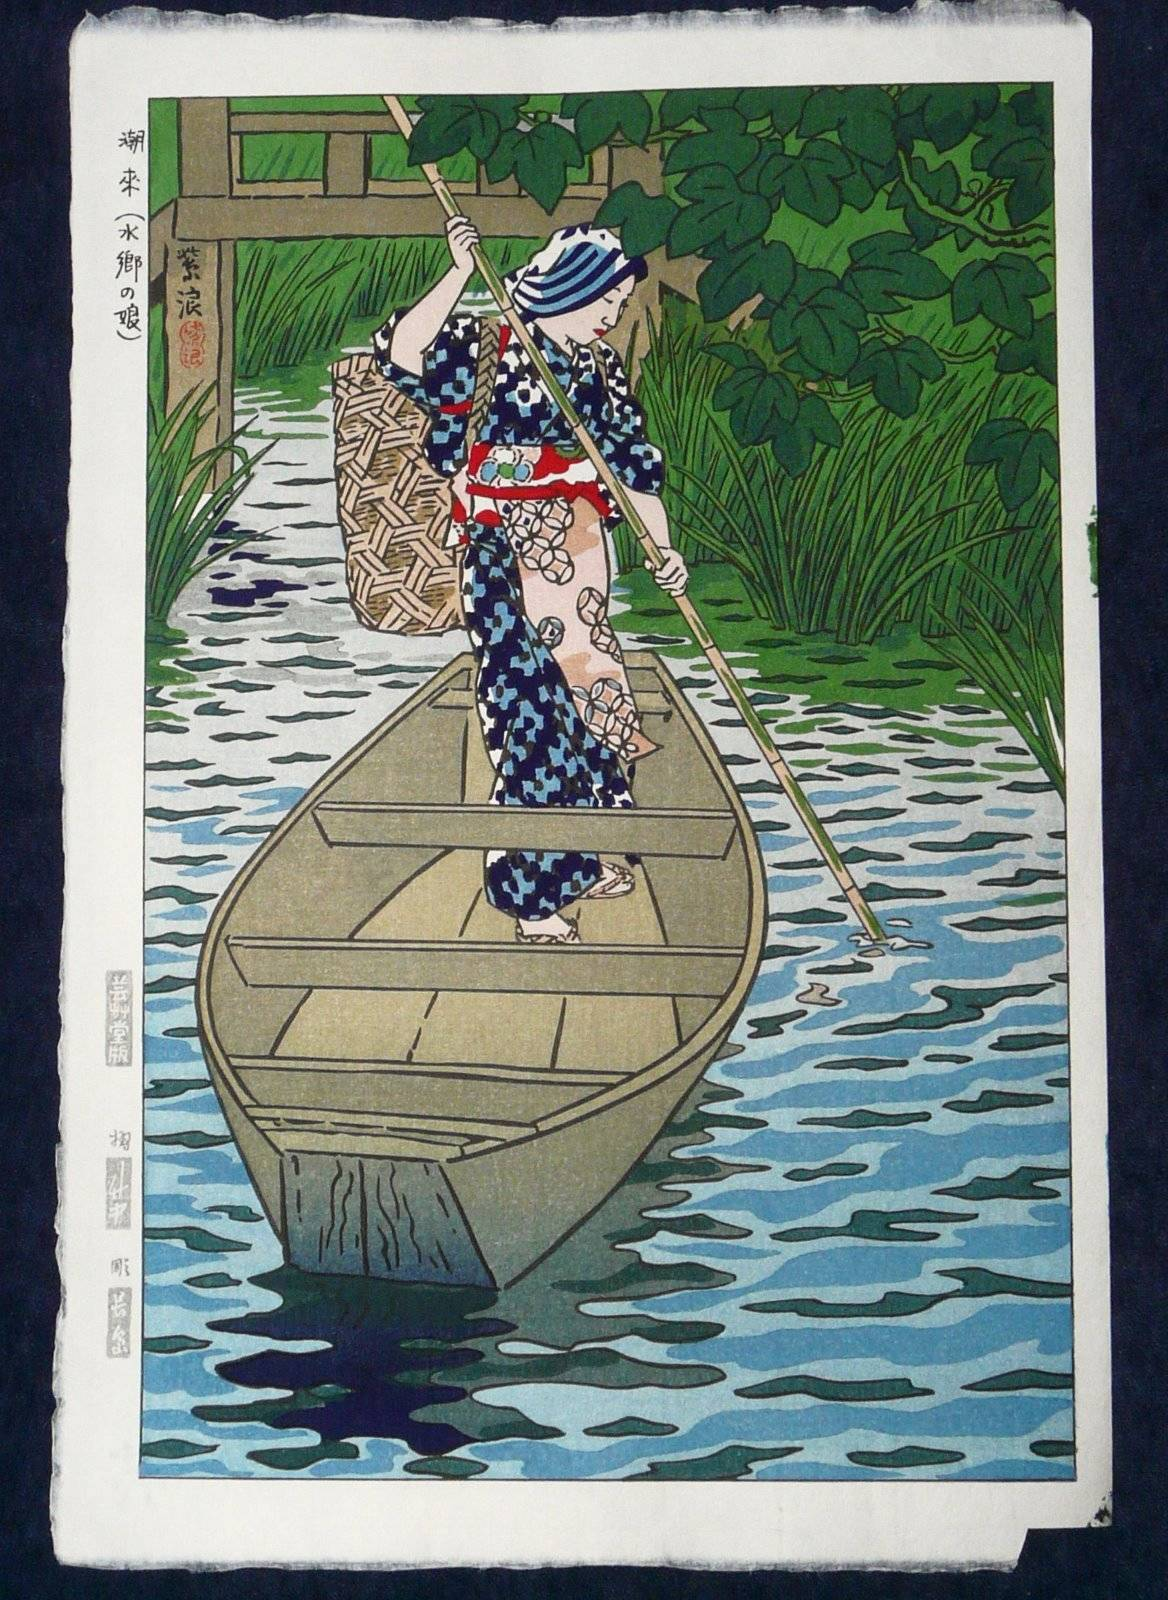 SHIRO KASAMATSU: #P4093 ITAKO, THE LAKESIDE VILLAGE